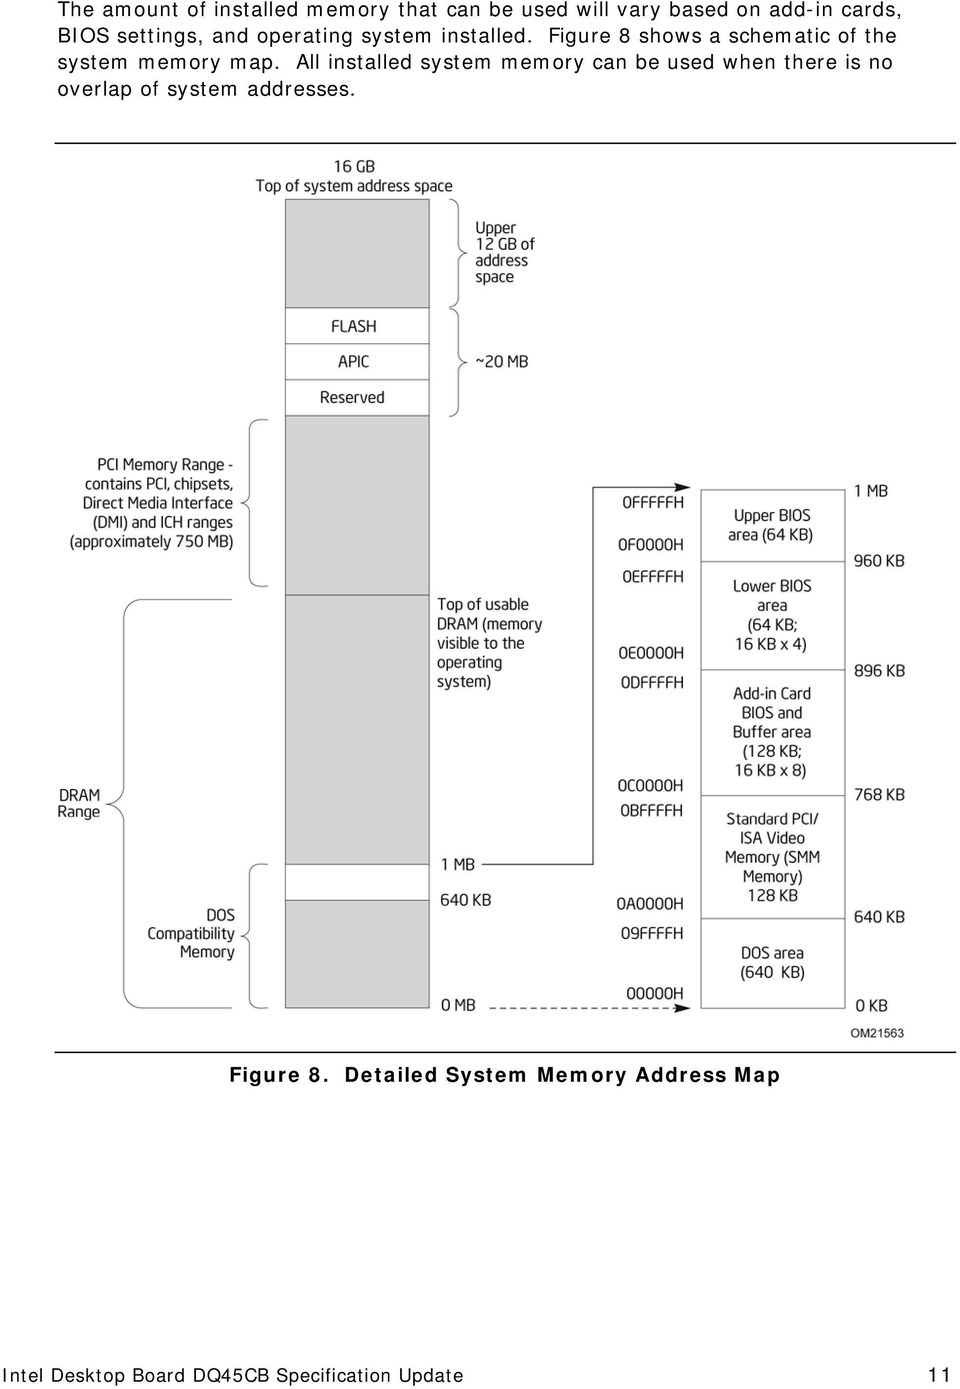 Figure 8 shows a schematic of the system memory map.